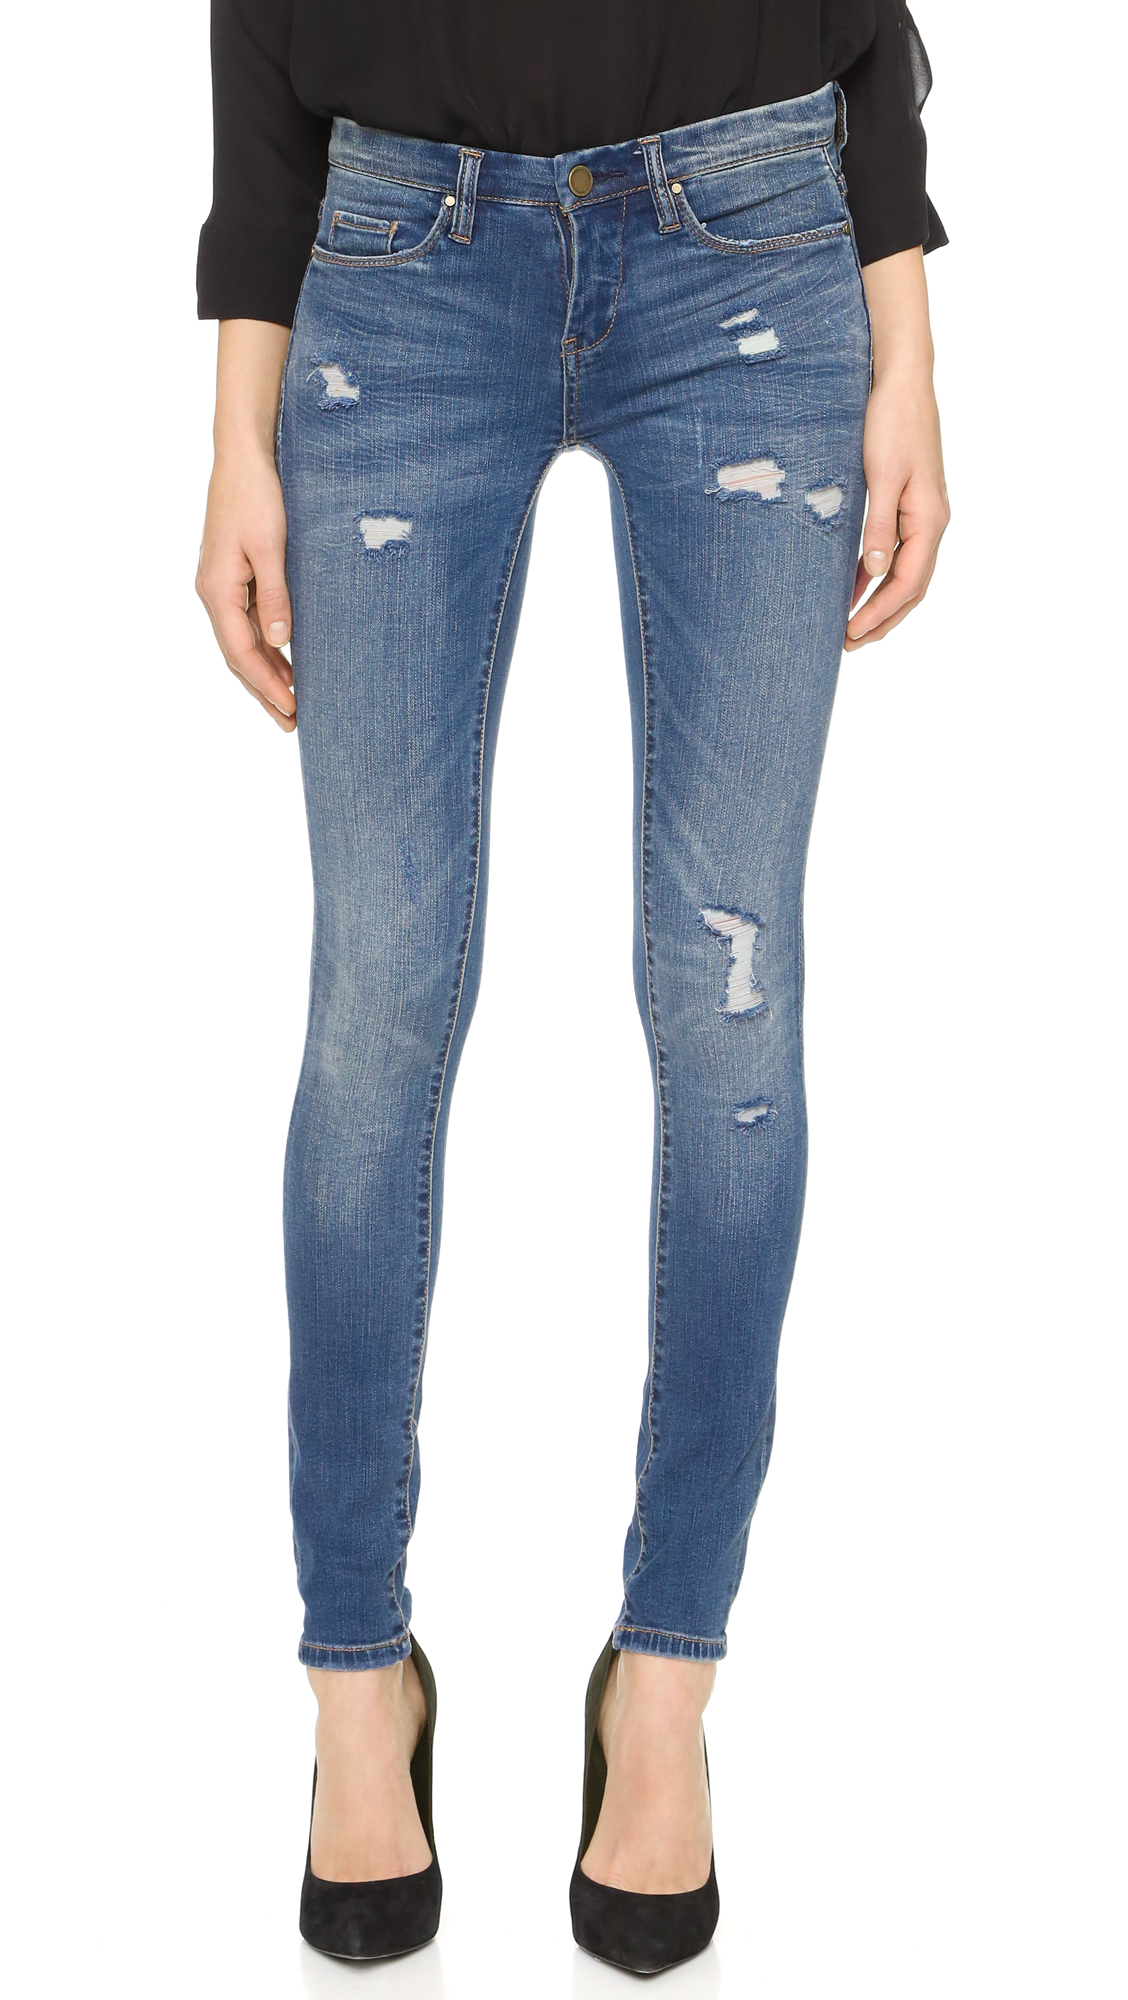 Blank Denim Skinny Jeans | 15% off first app purchase with code ...